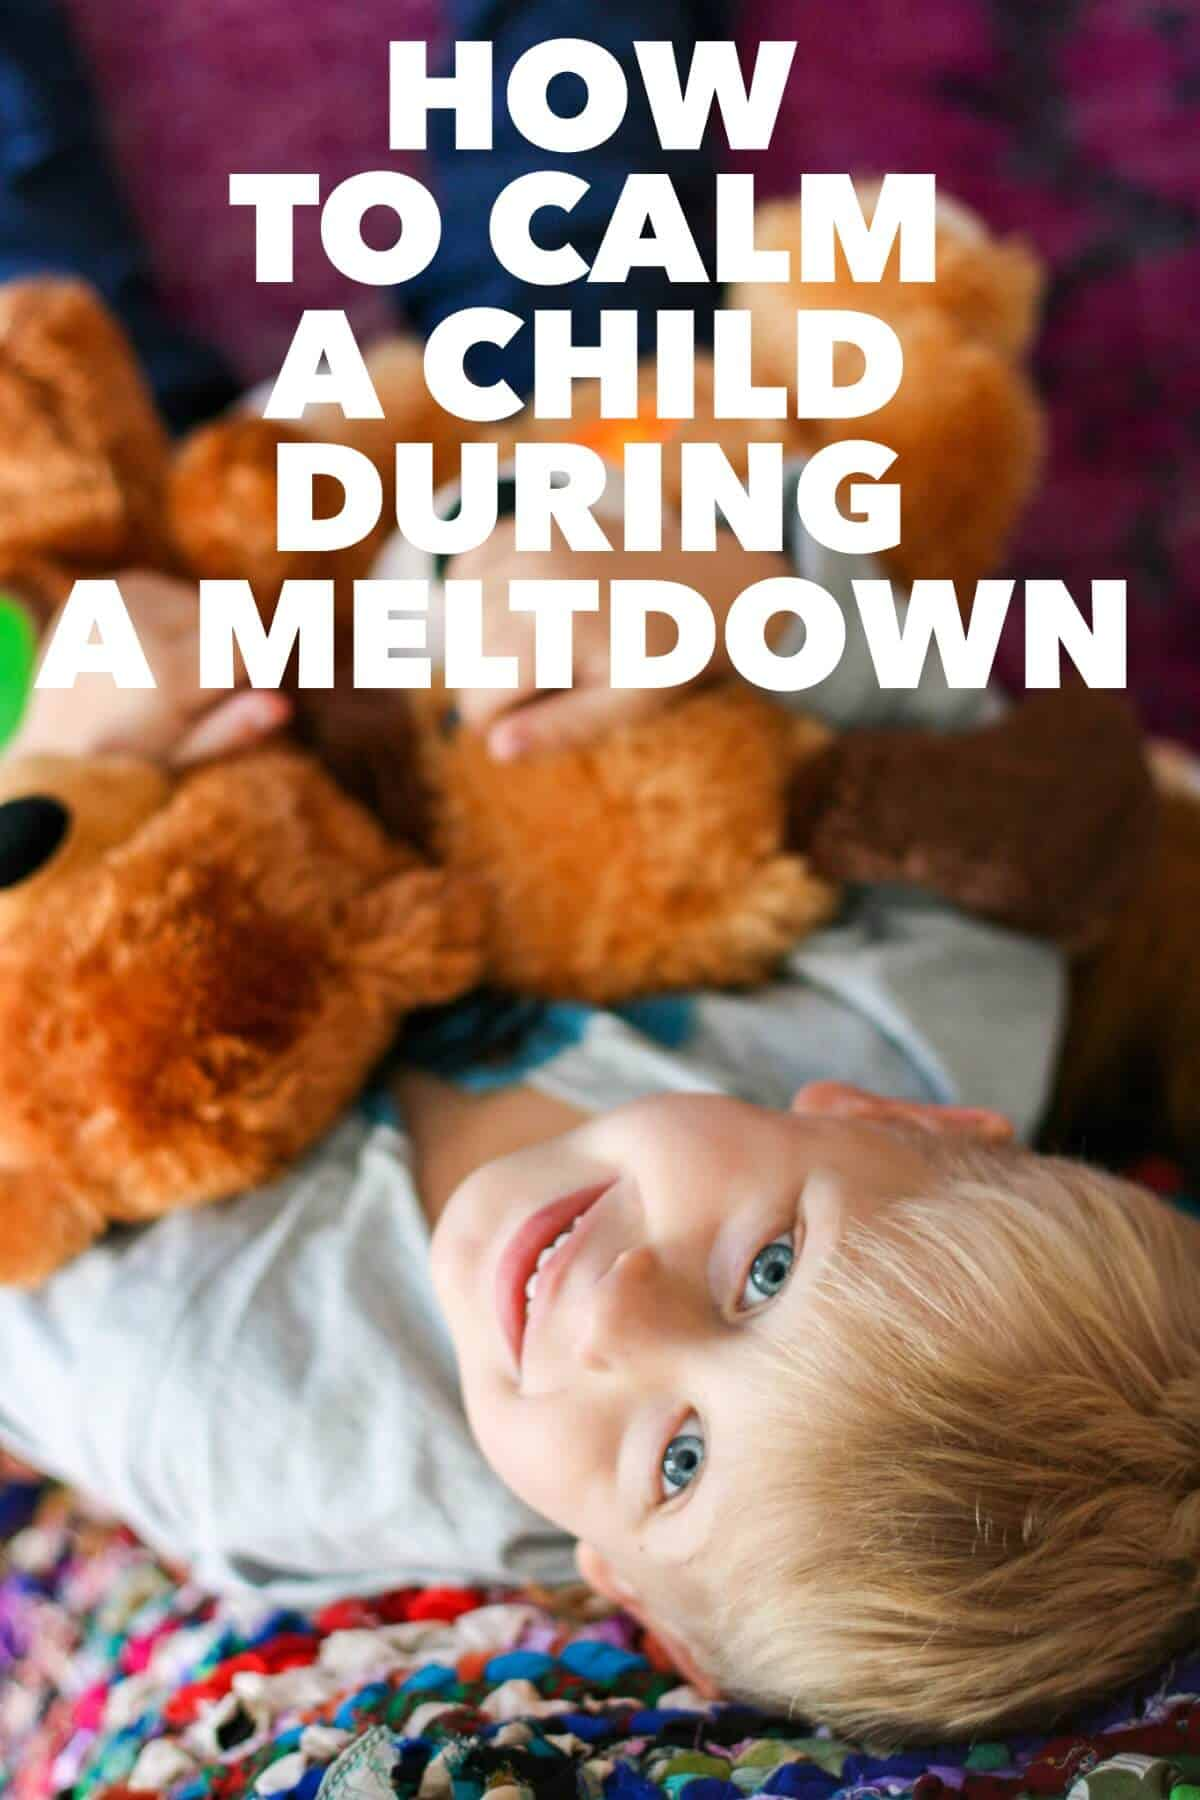 How to calm a child during a meltdown